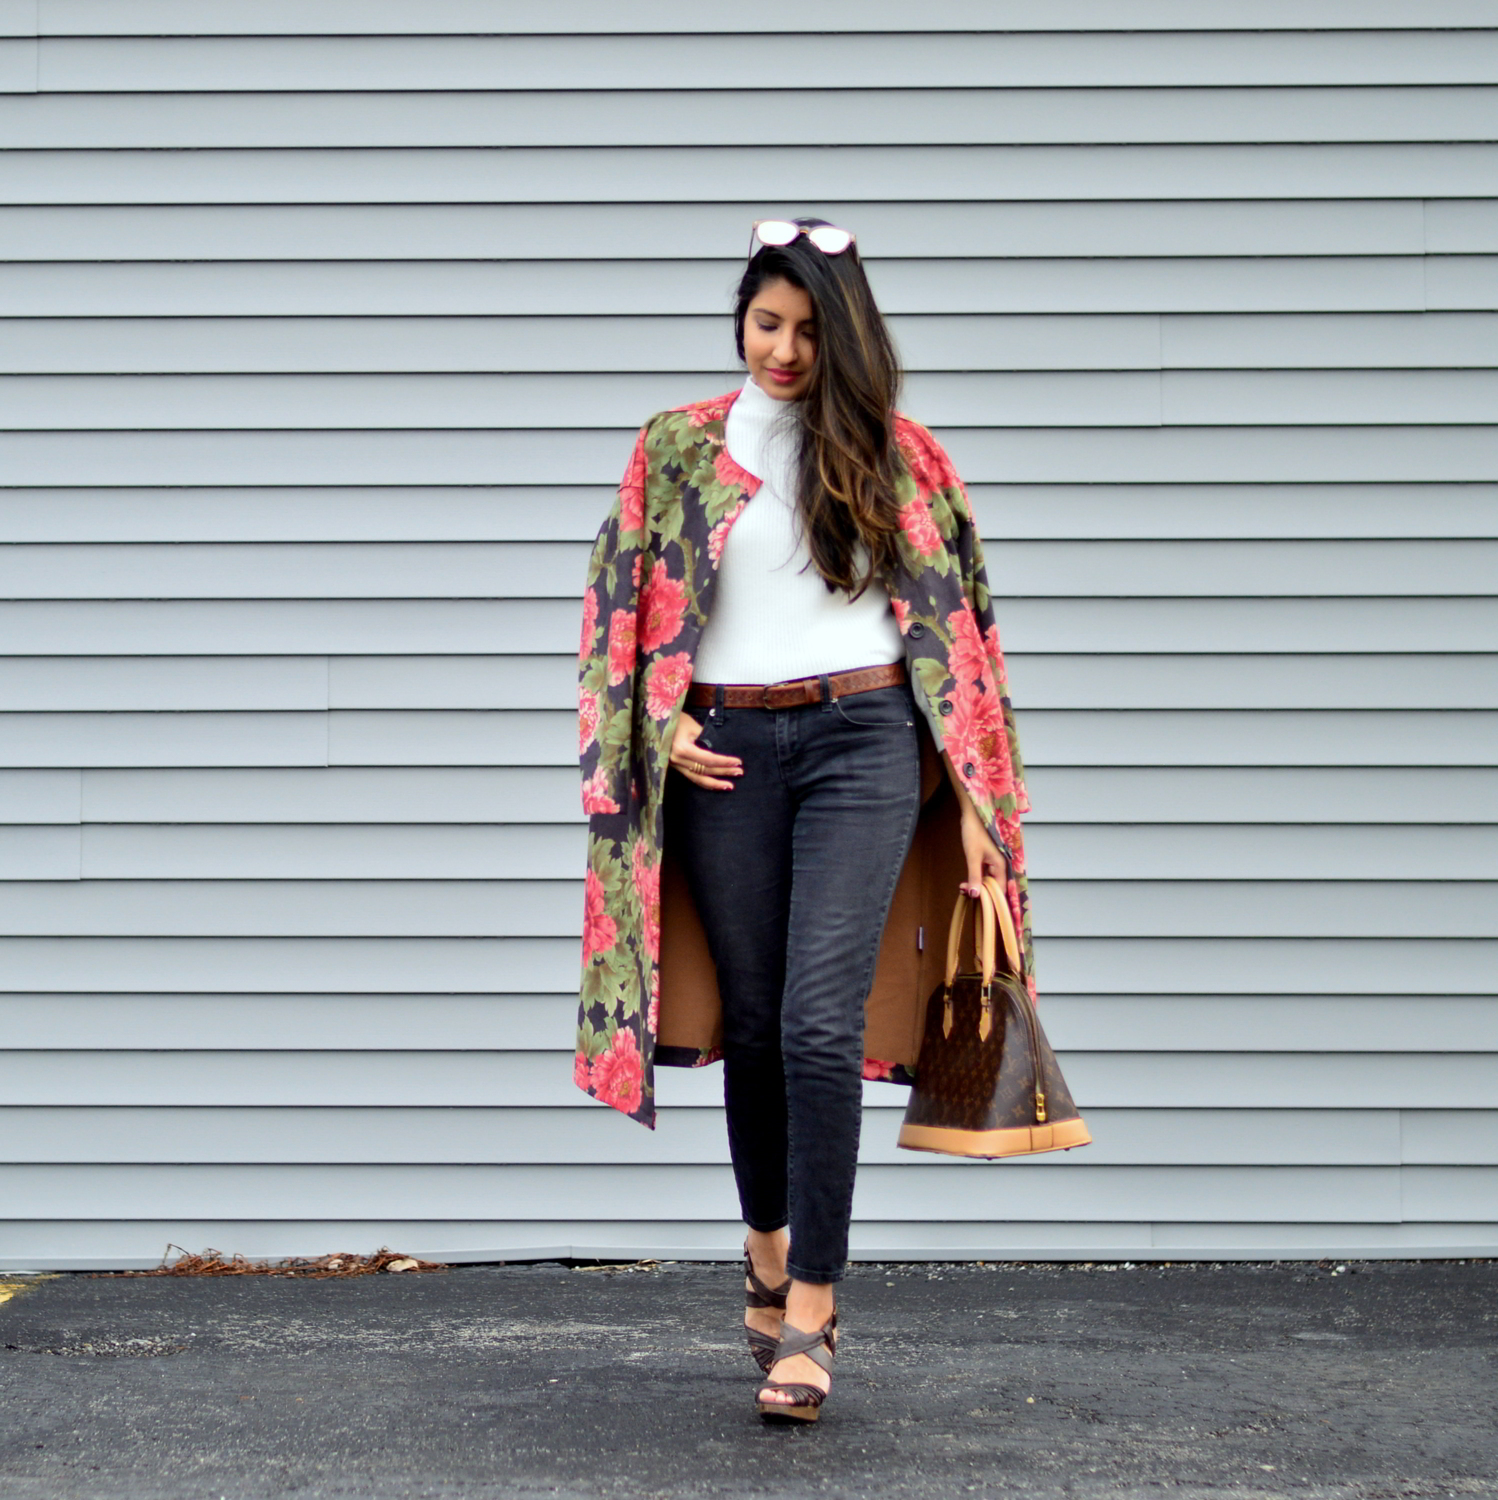 suede-floral-coat-winter-street-style-blogger-outfit-skinny-jeans 3